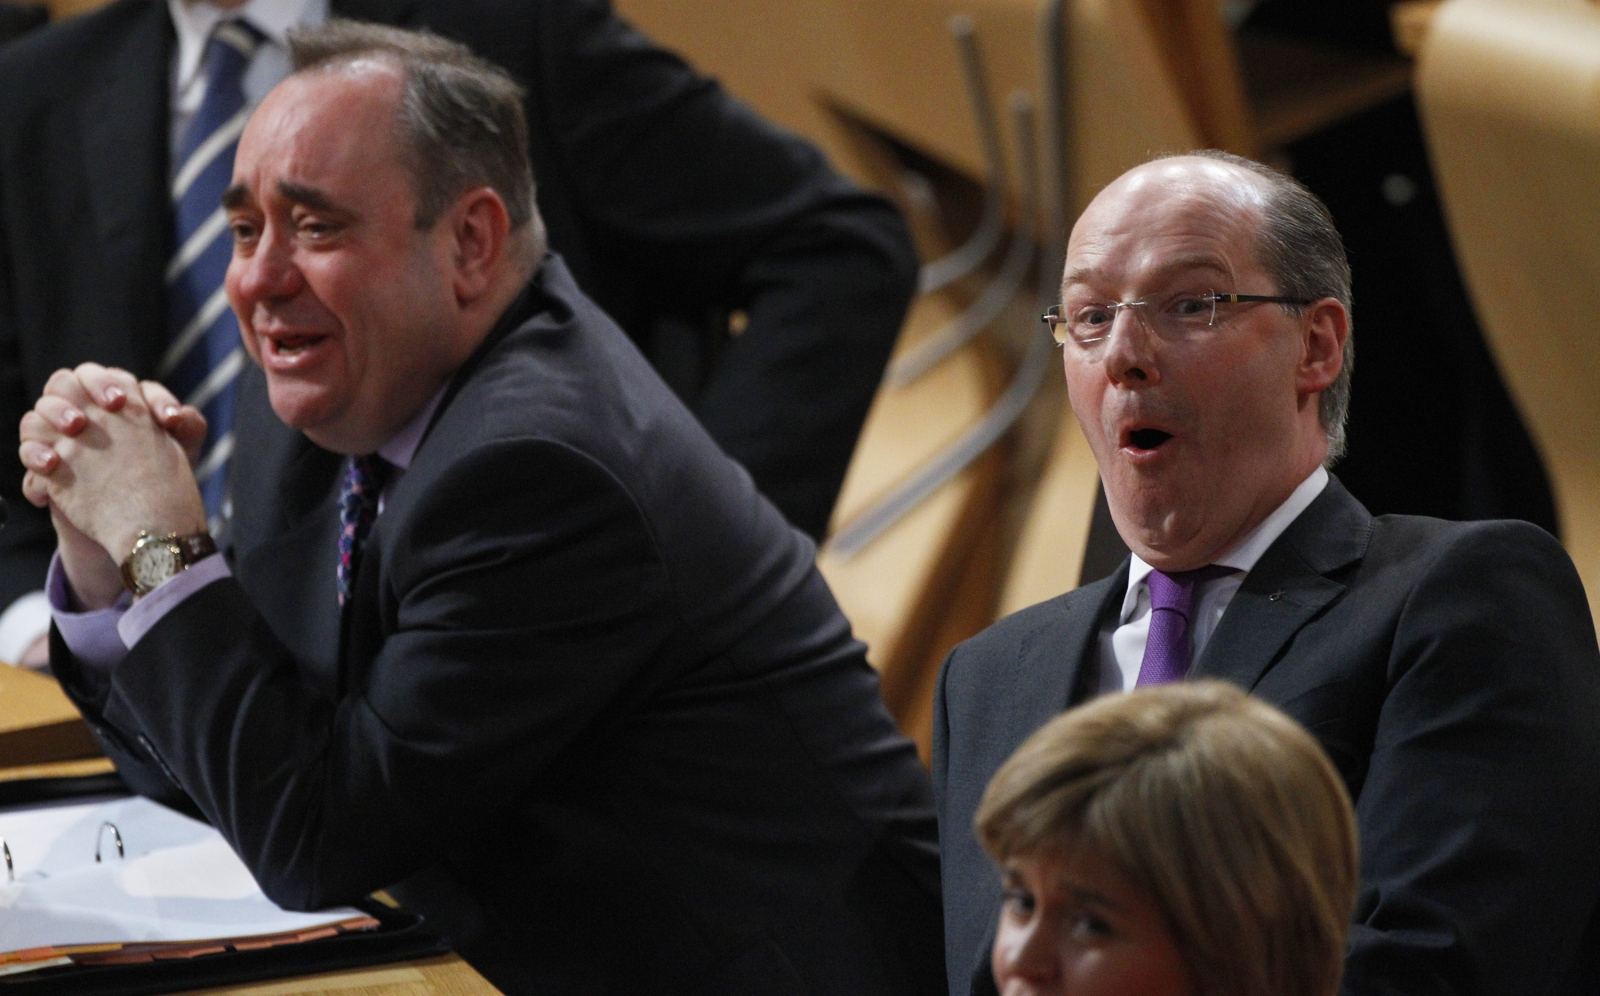 Scottish Independence: SNP Holds Debt Ransom Against UK to Keep Currency